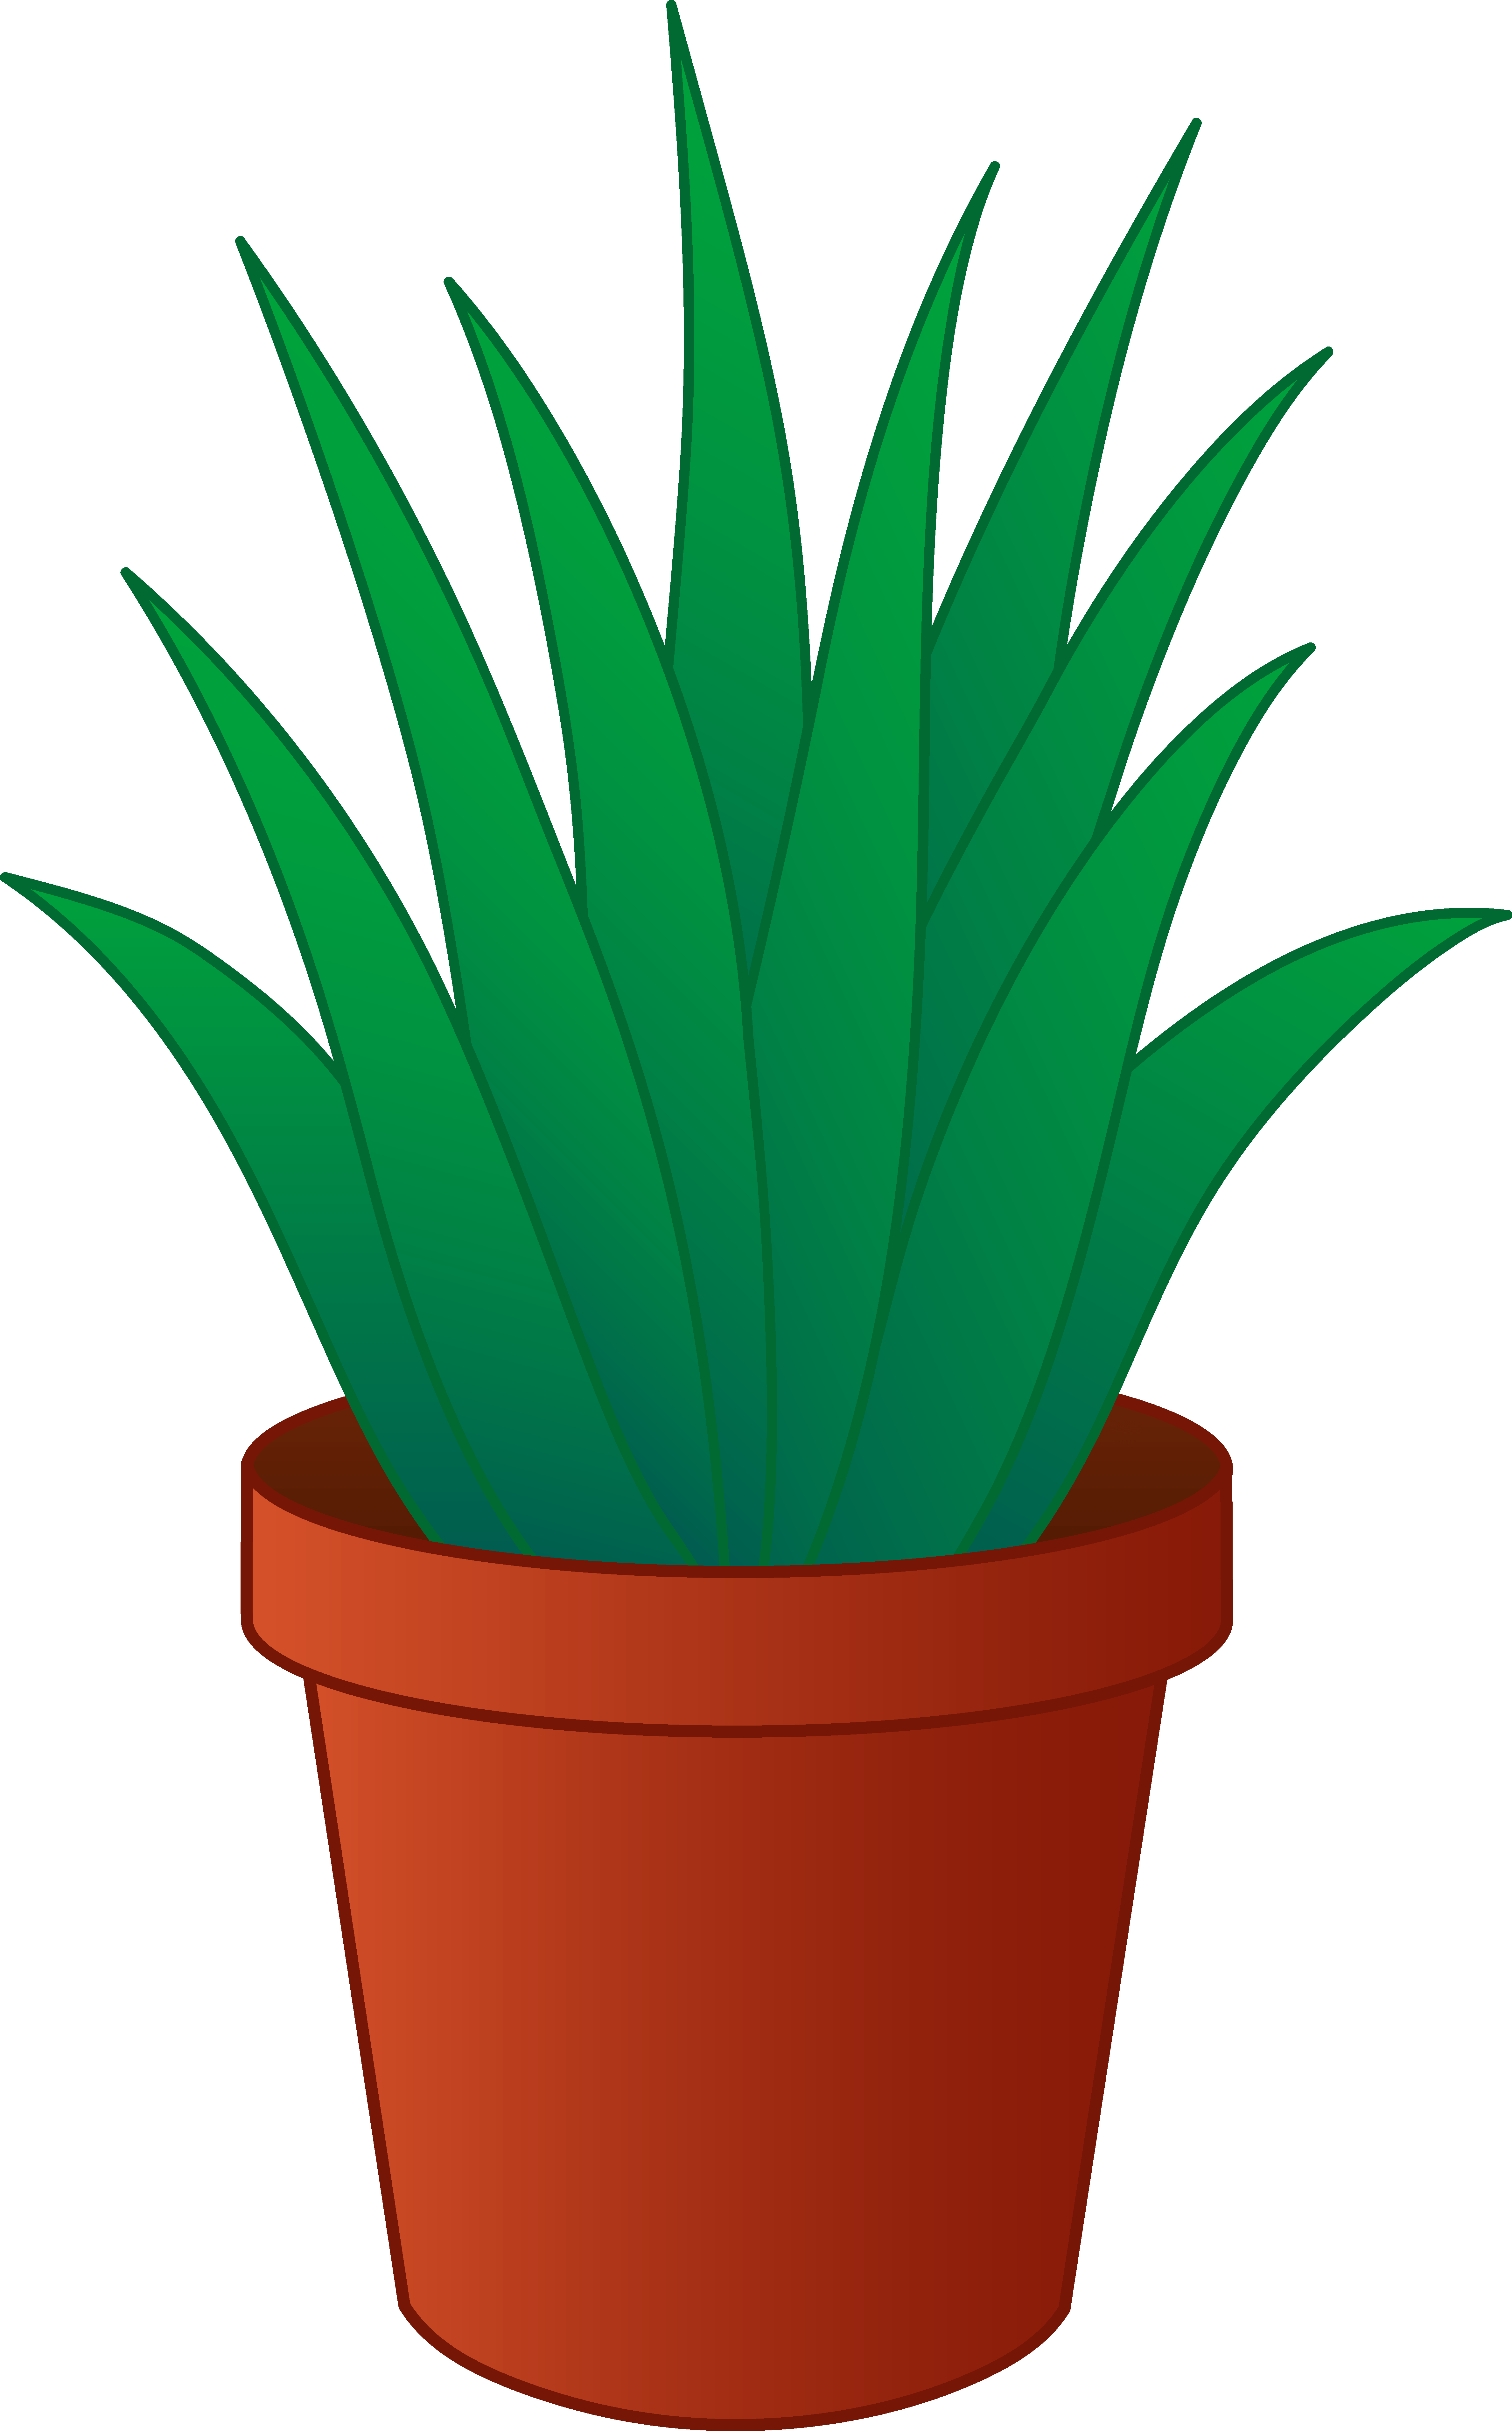 Plant clipart transparent background. House free collection download